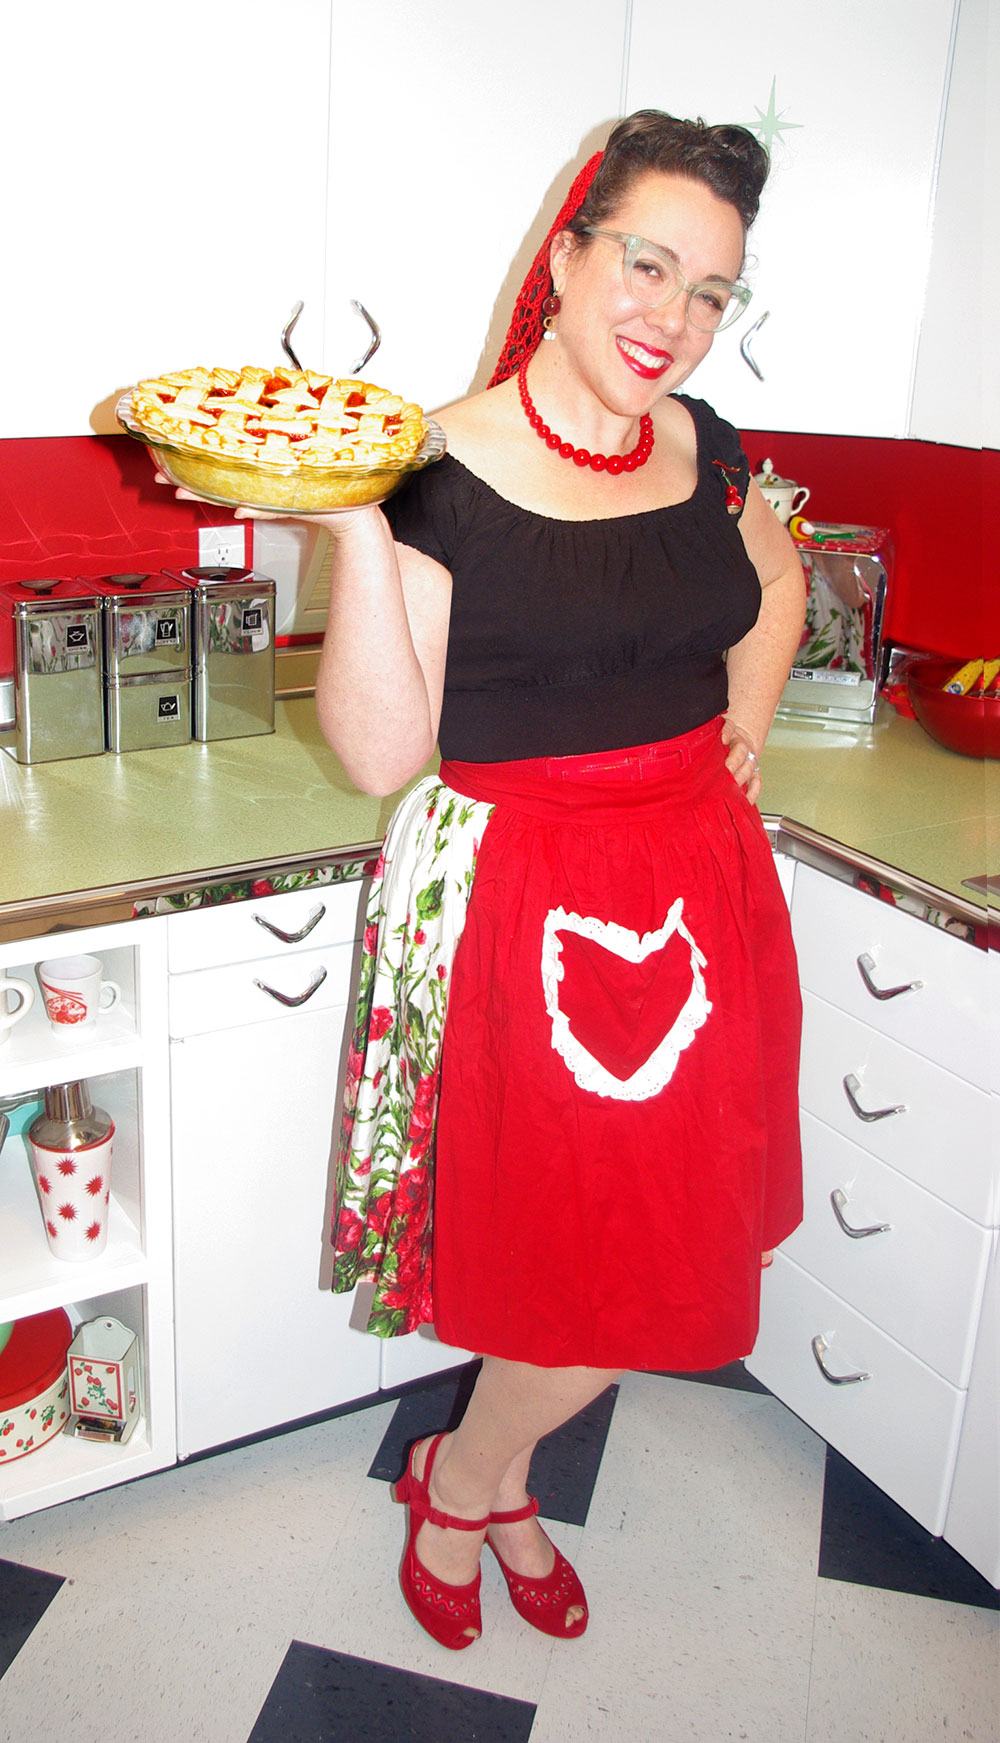 Always looking for a reason to dress up! I'd say spanking new kitchen and pie is as good a reason as any.